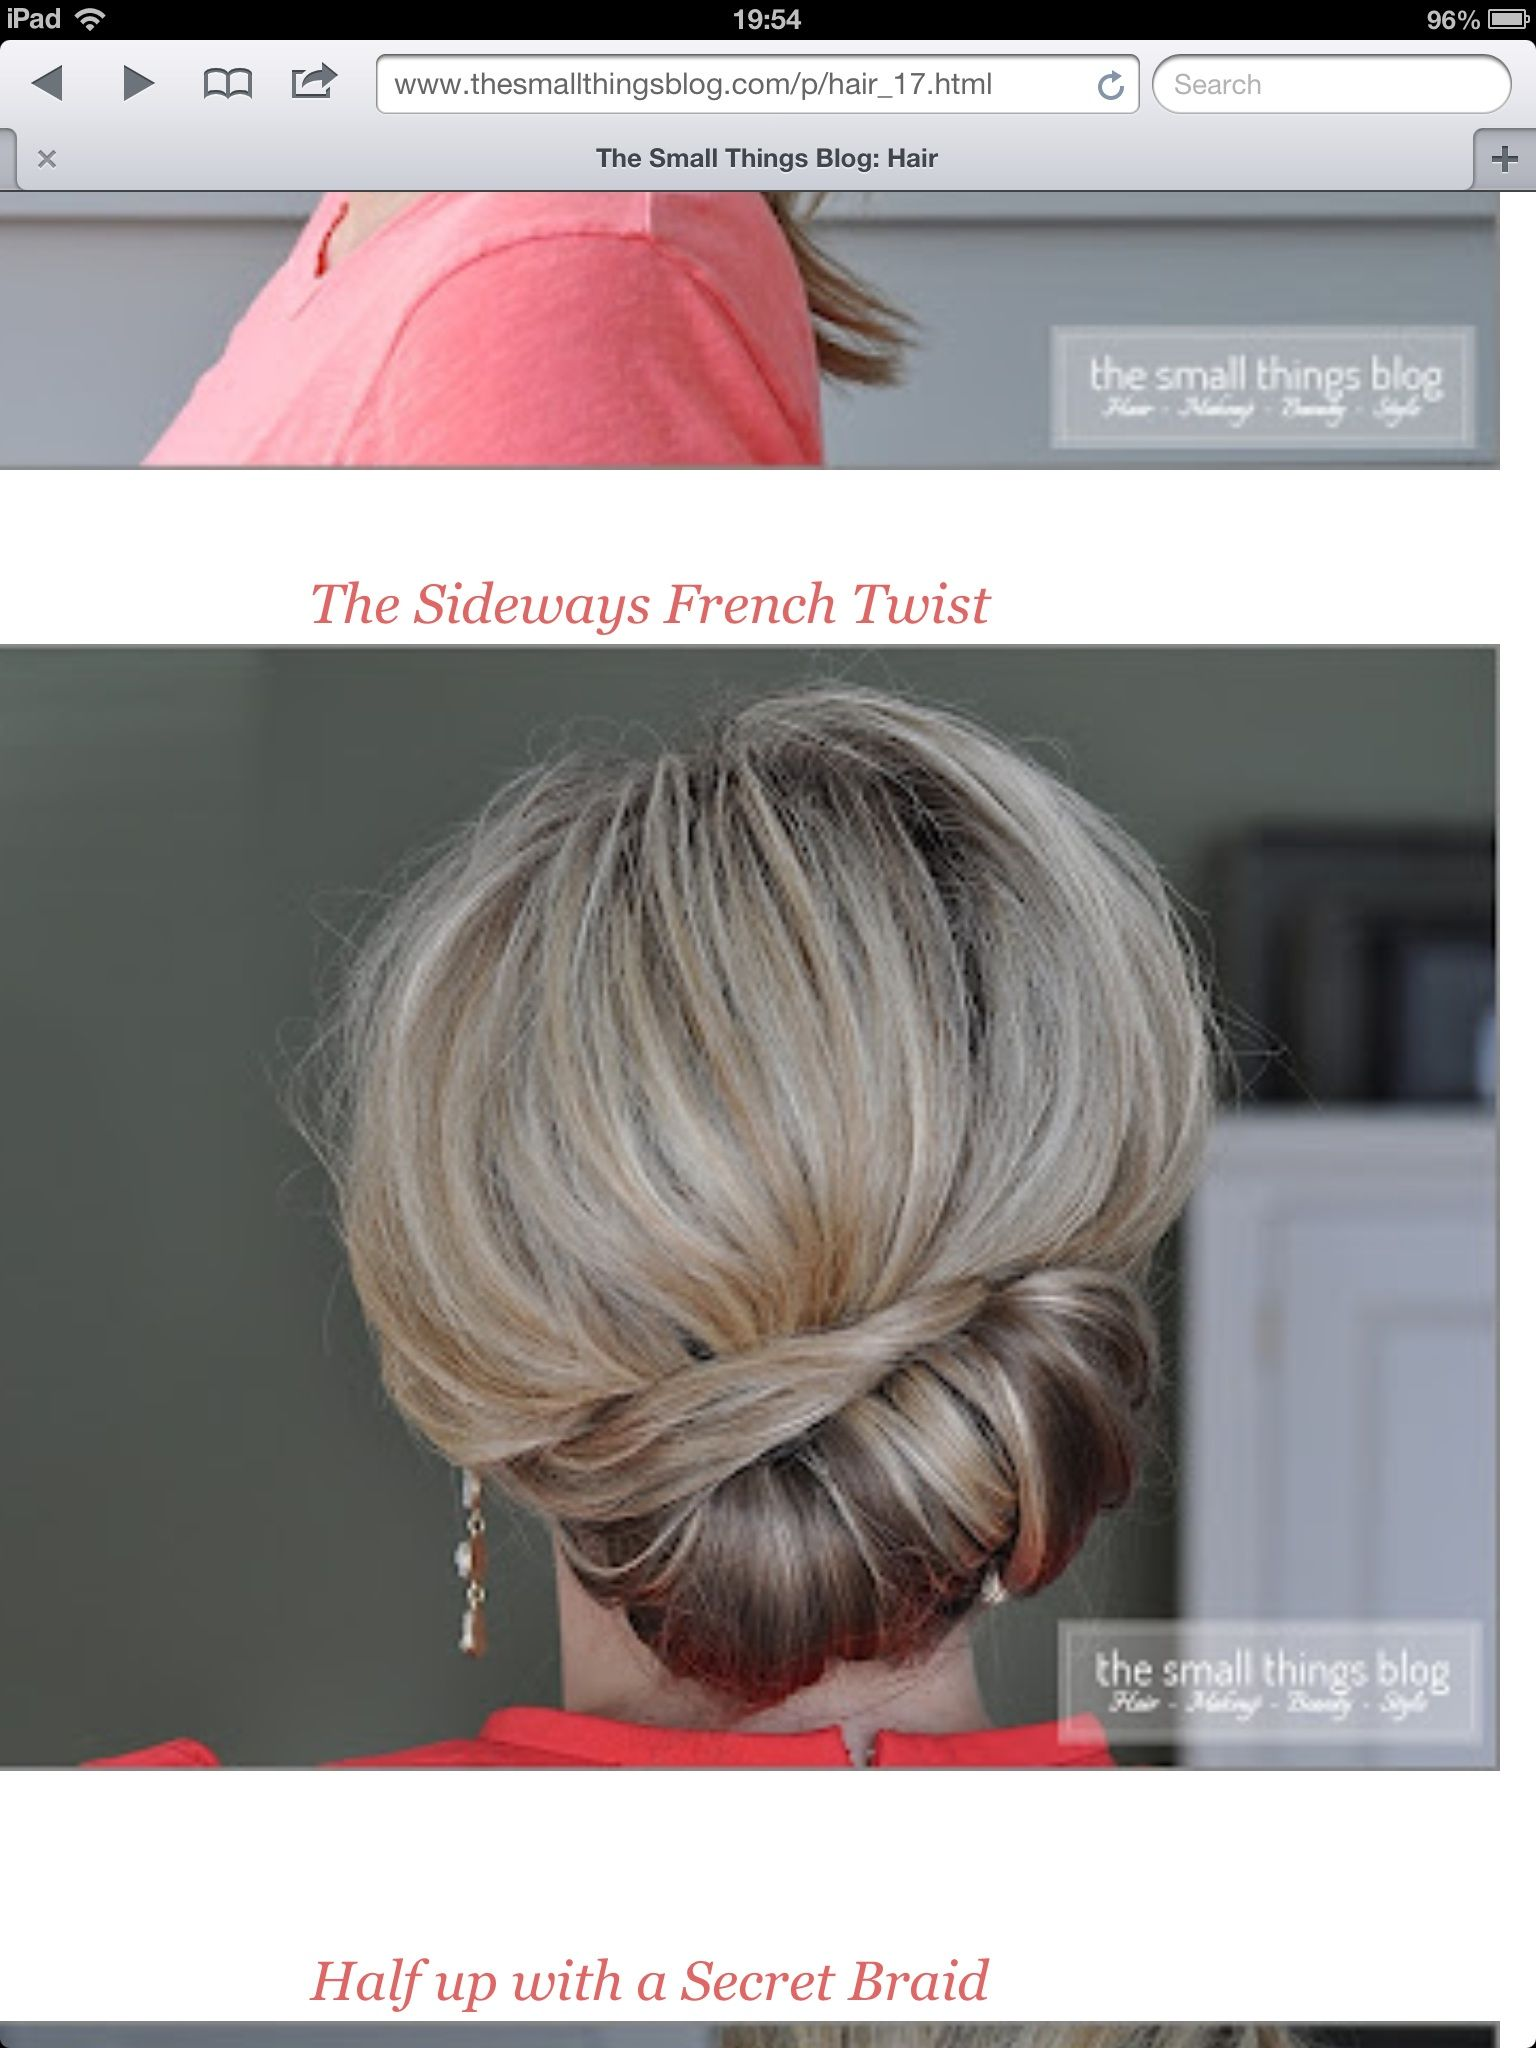 Awe inspiring pinterest the world39s catalog of ideas updo hairstyles - 10 Images About Wedding Hair On Pinterest Updo Messy Wedding Updo And Bridal Makeup